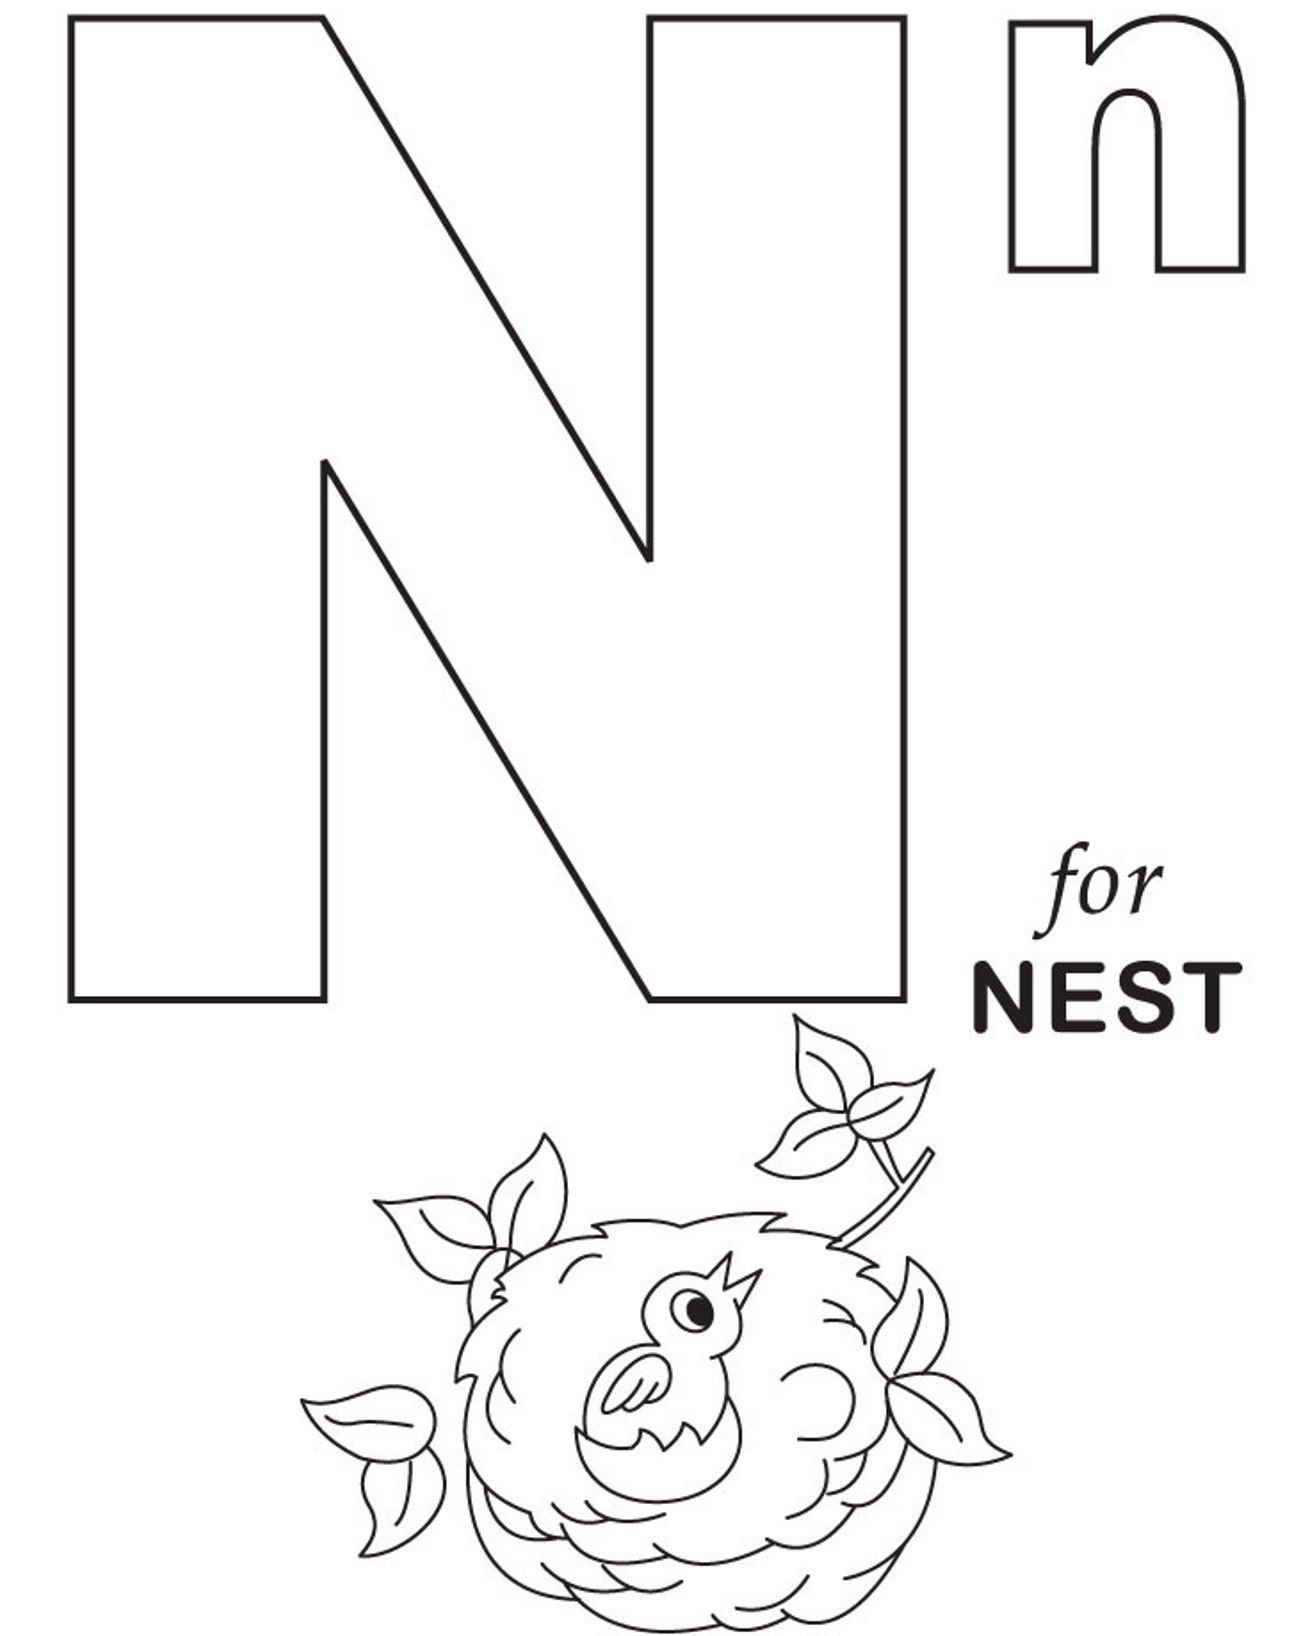 Free Alphabet Coloring Pages N For Nest | letters | Pinterest